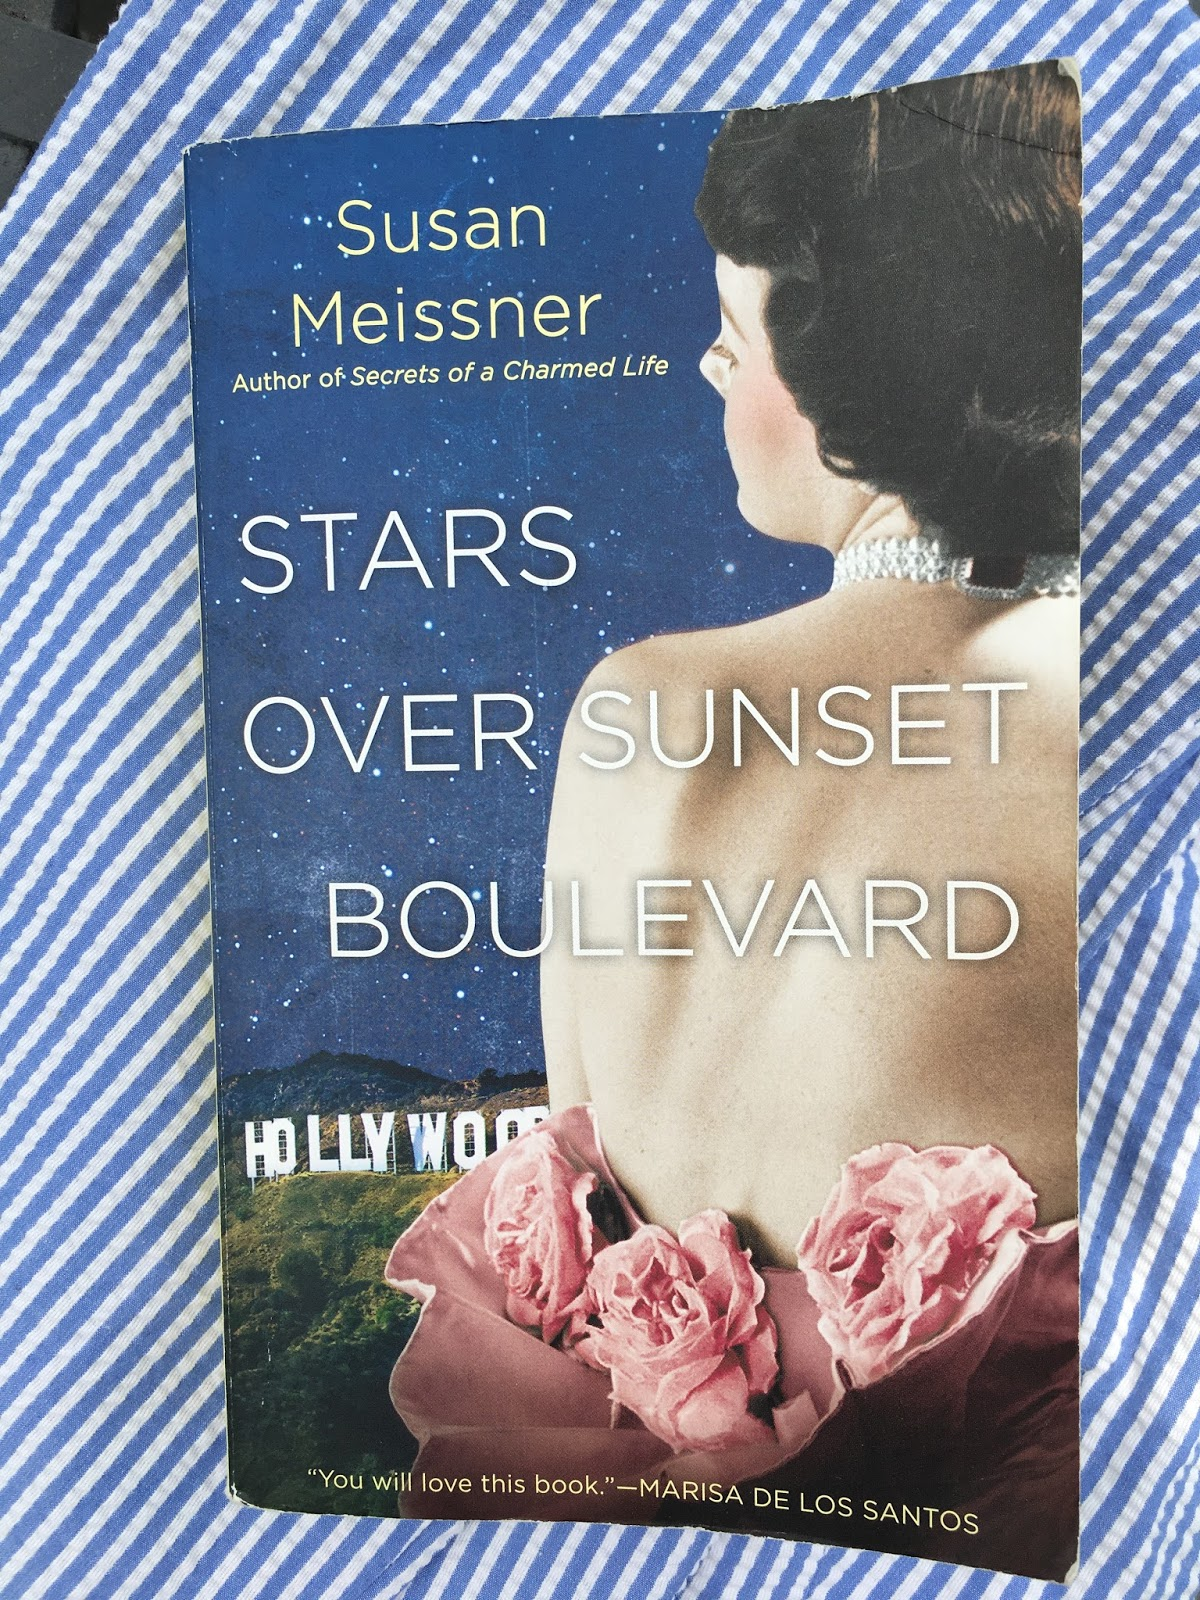 Stars Over Sunset Boulevard - loved this and it inspired me to read Gone with the Wind!